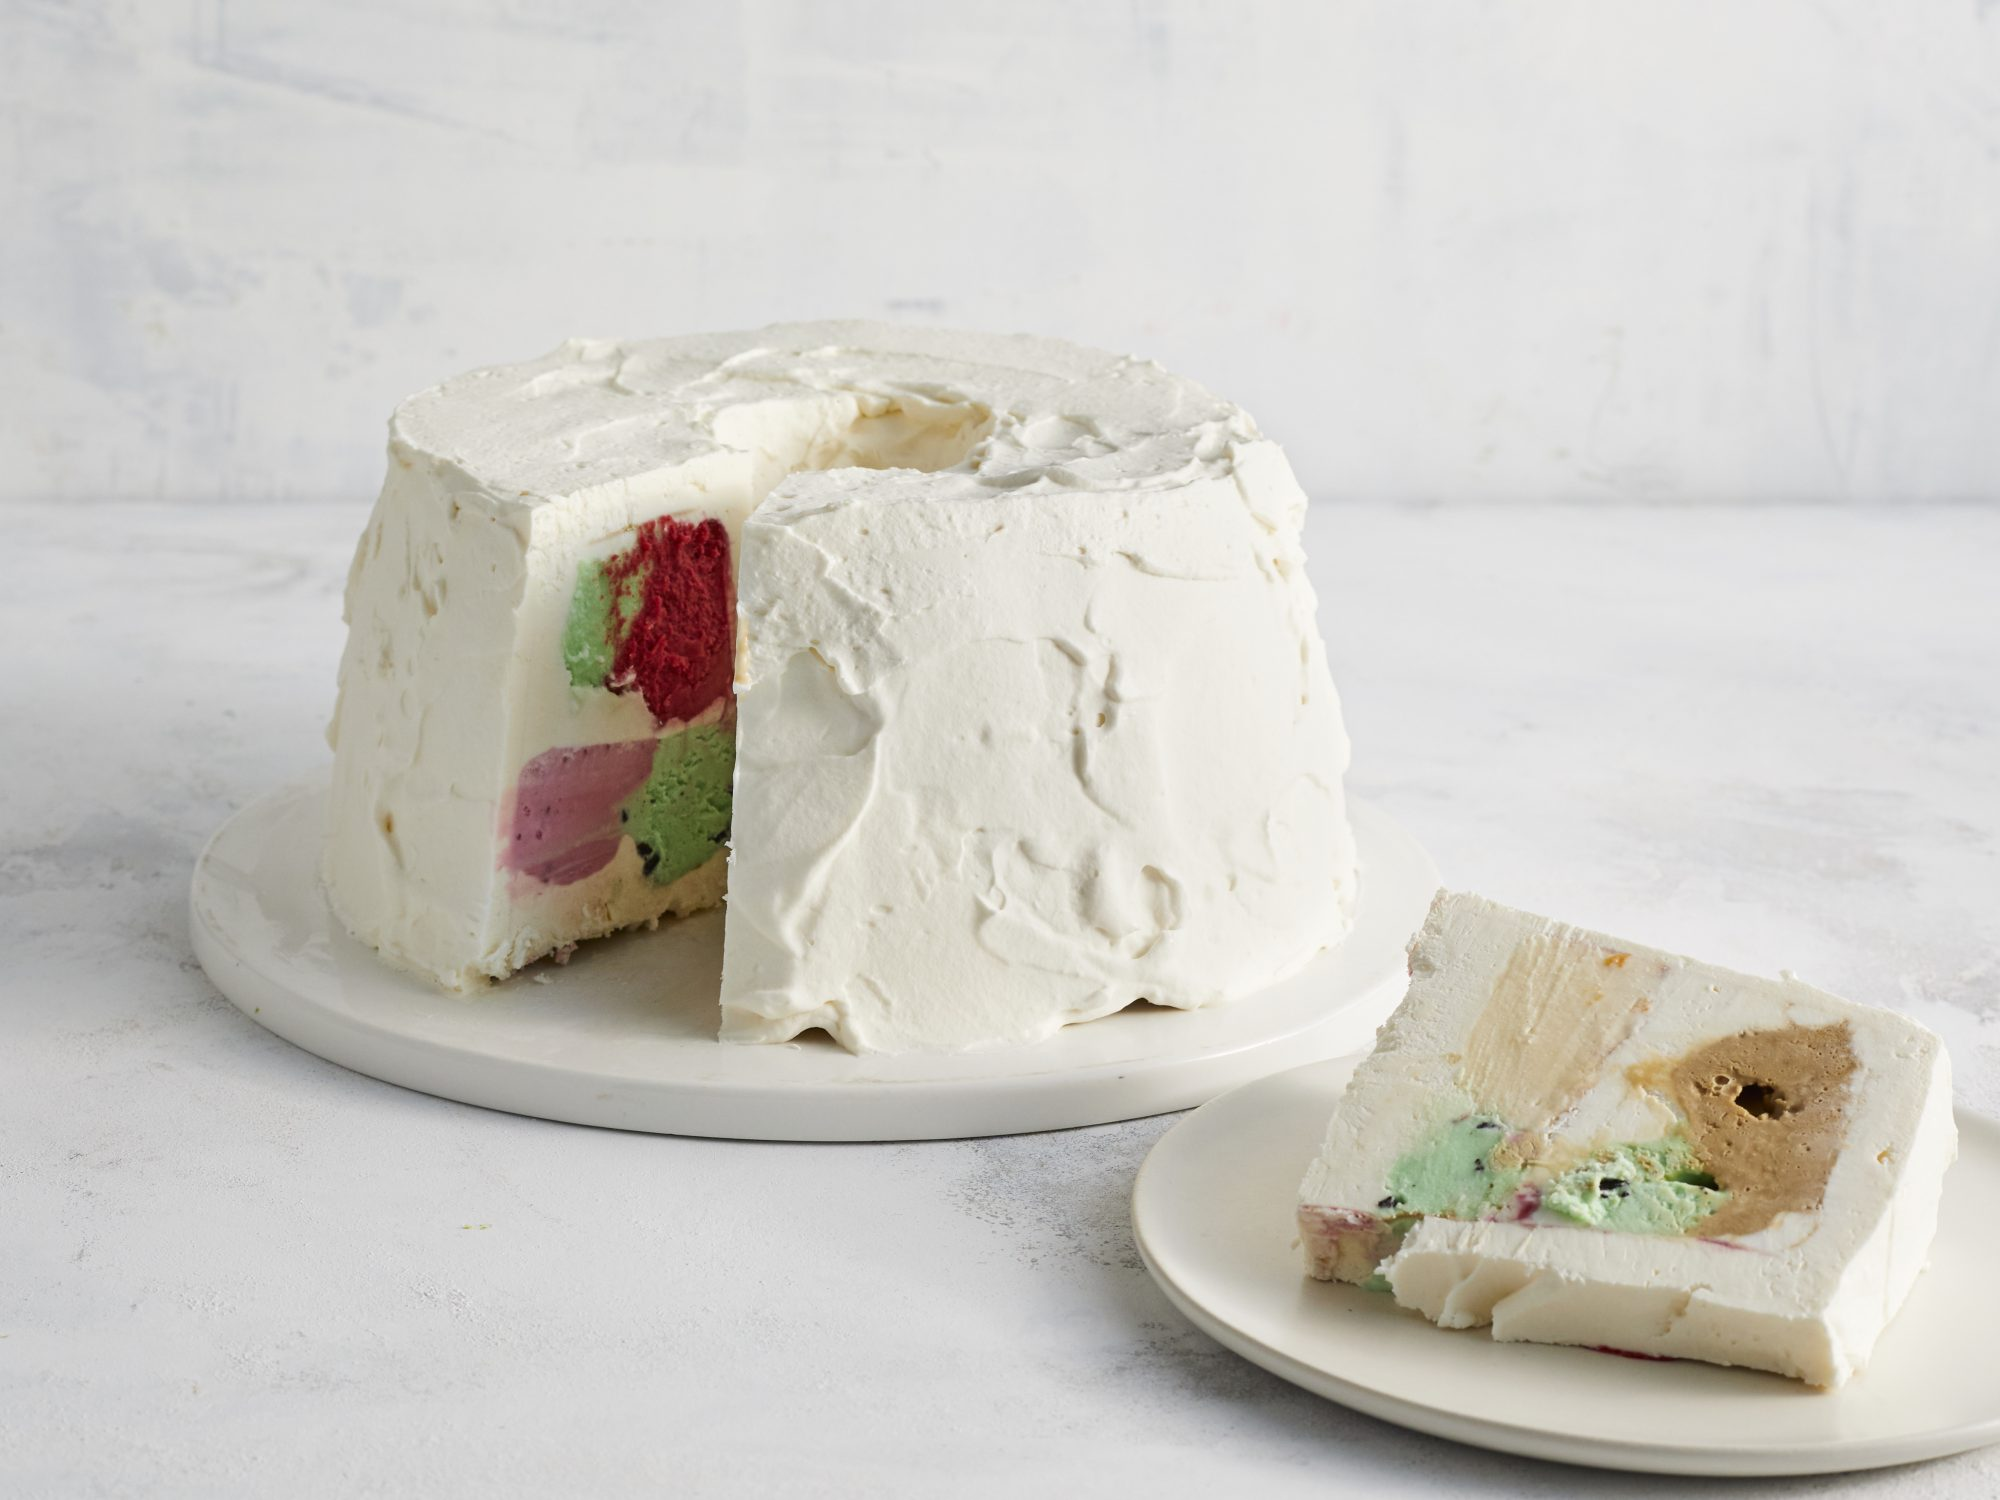 Ice Cream Cake image